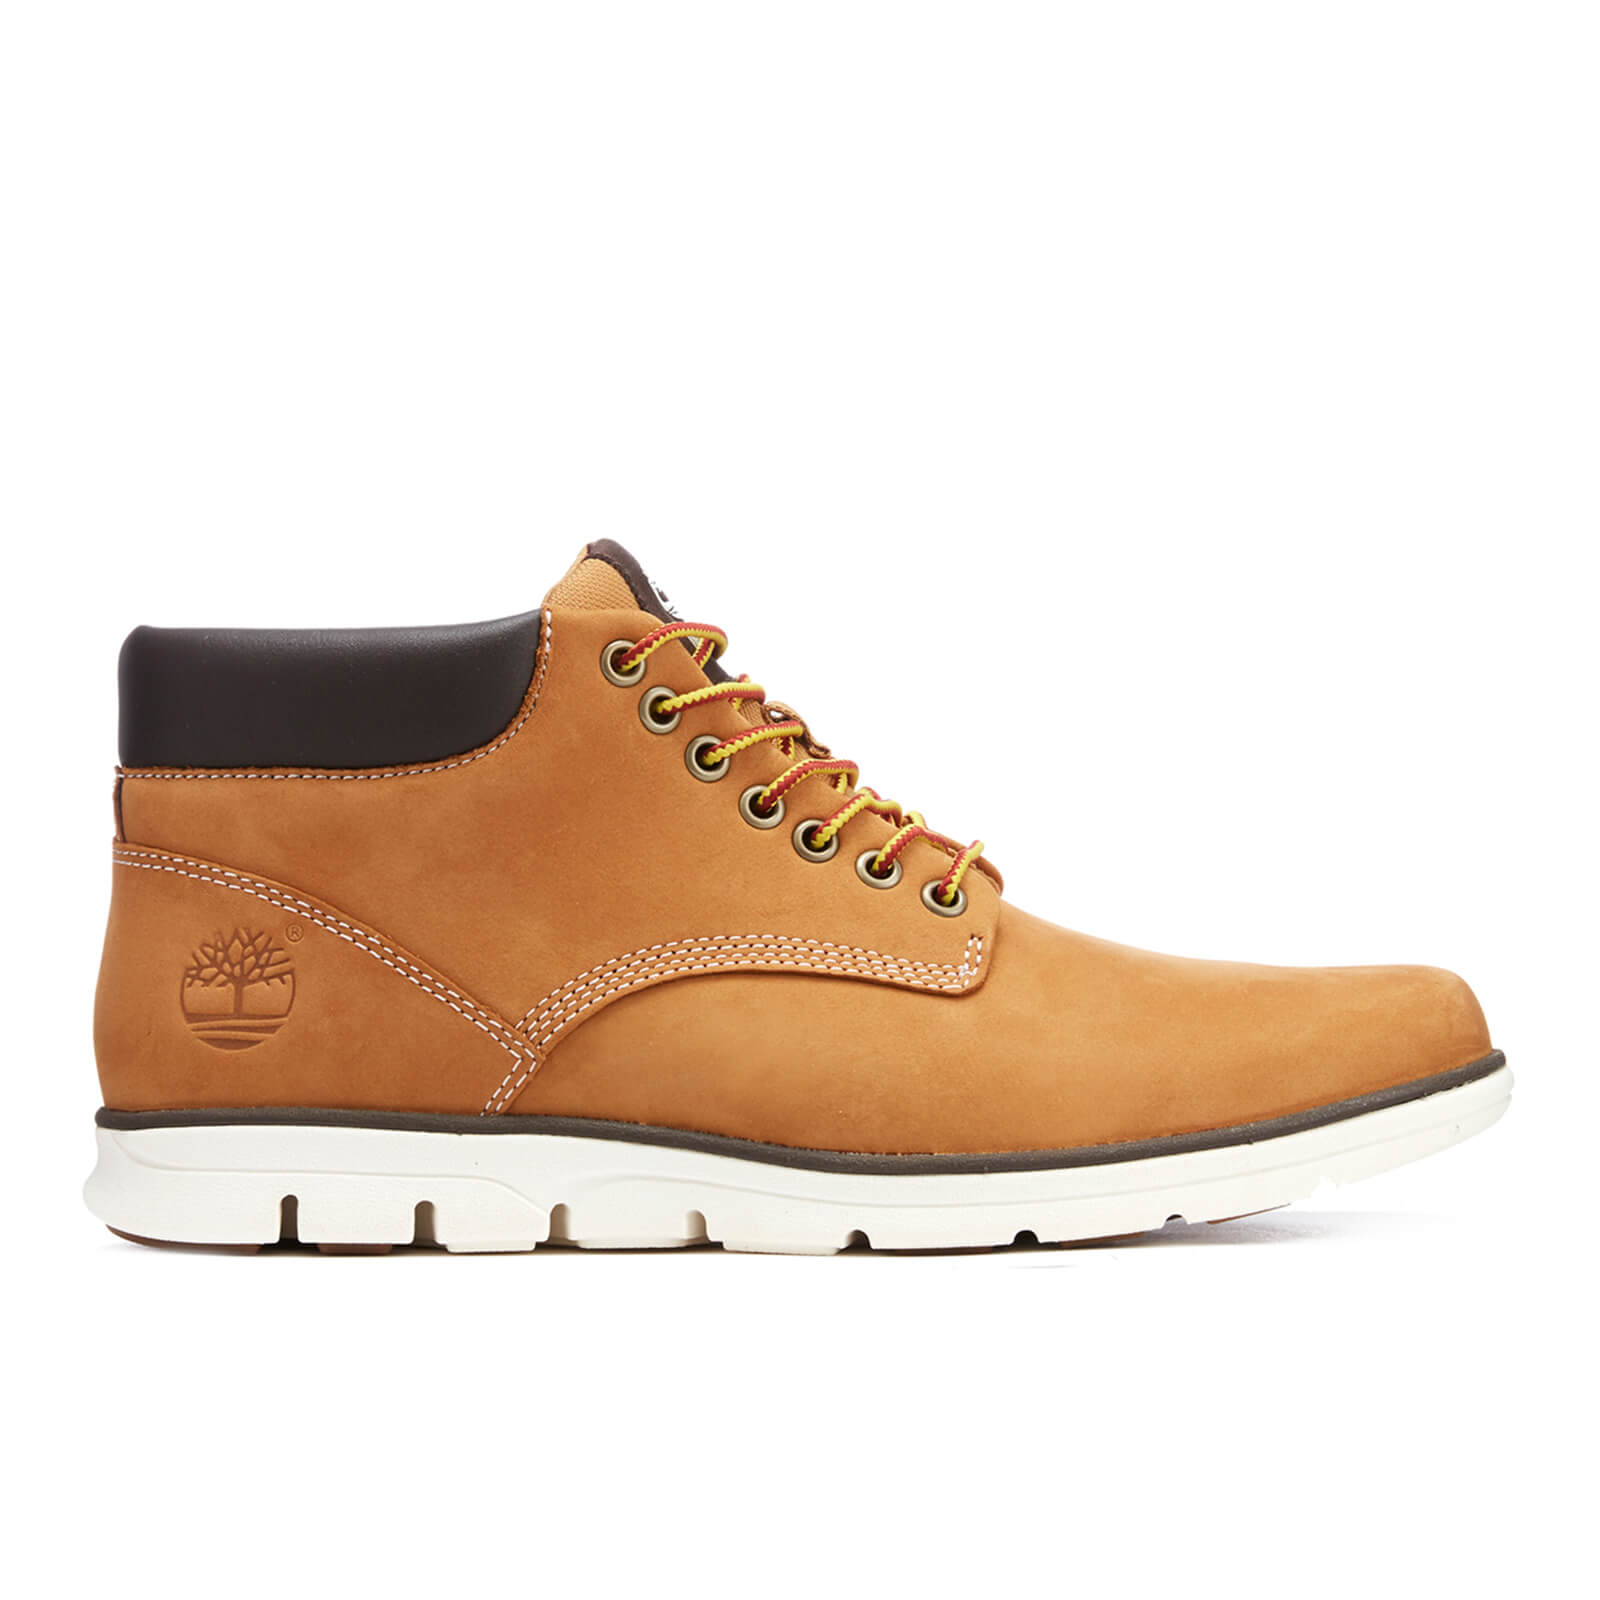 5bf1a13944be Timberland Men s Bradstreet Chukka Leather Boots - Wheat Mens Footwear